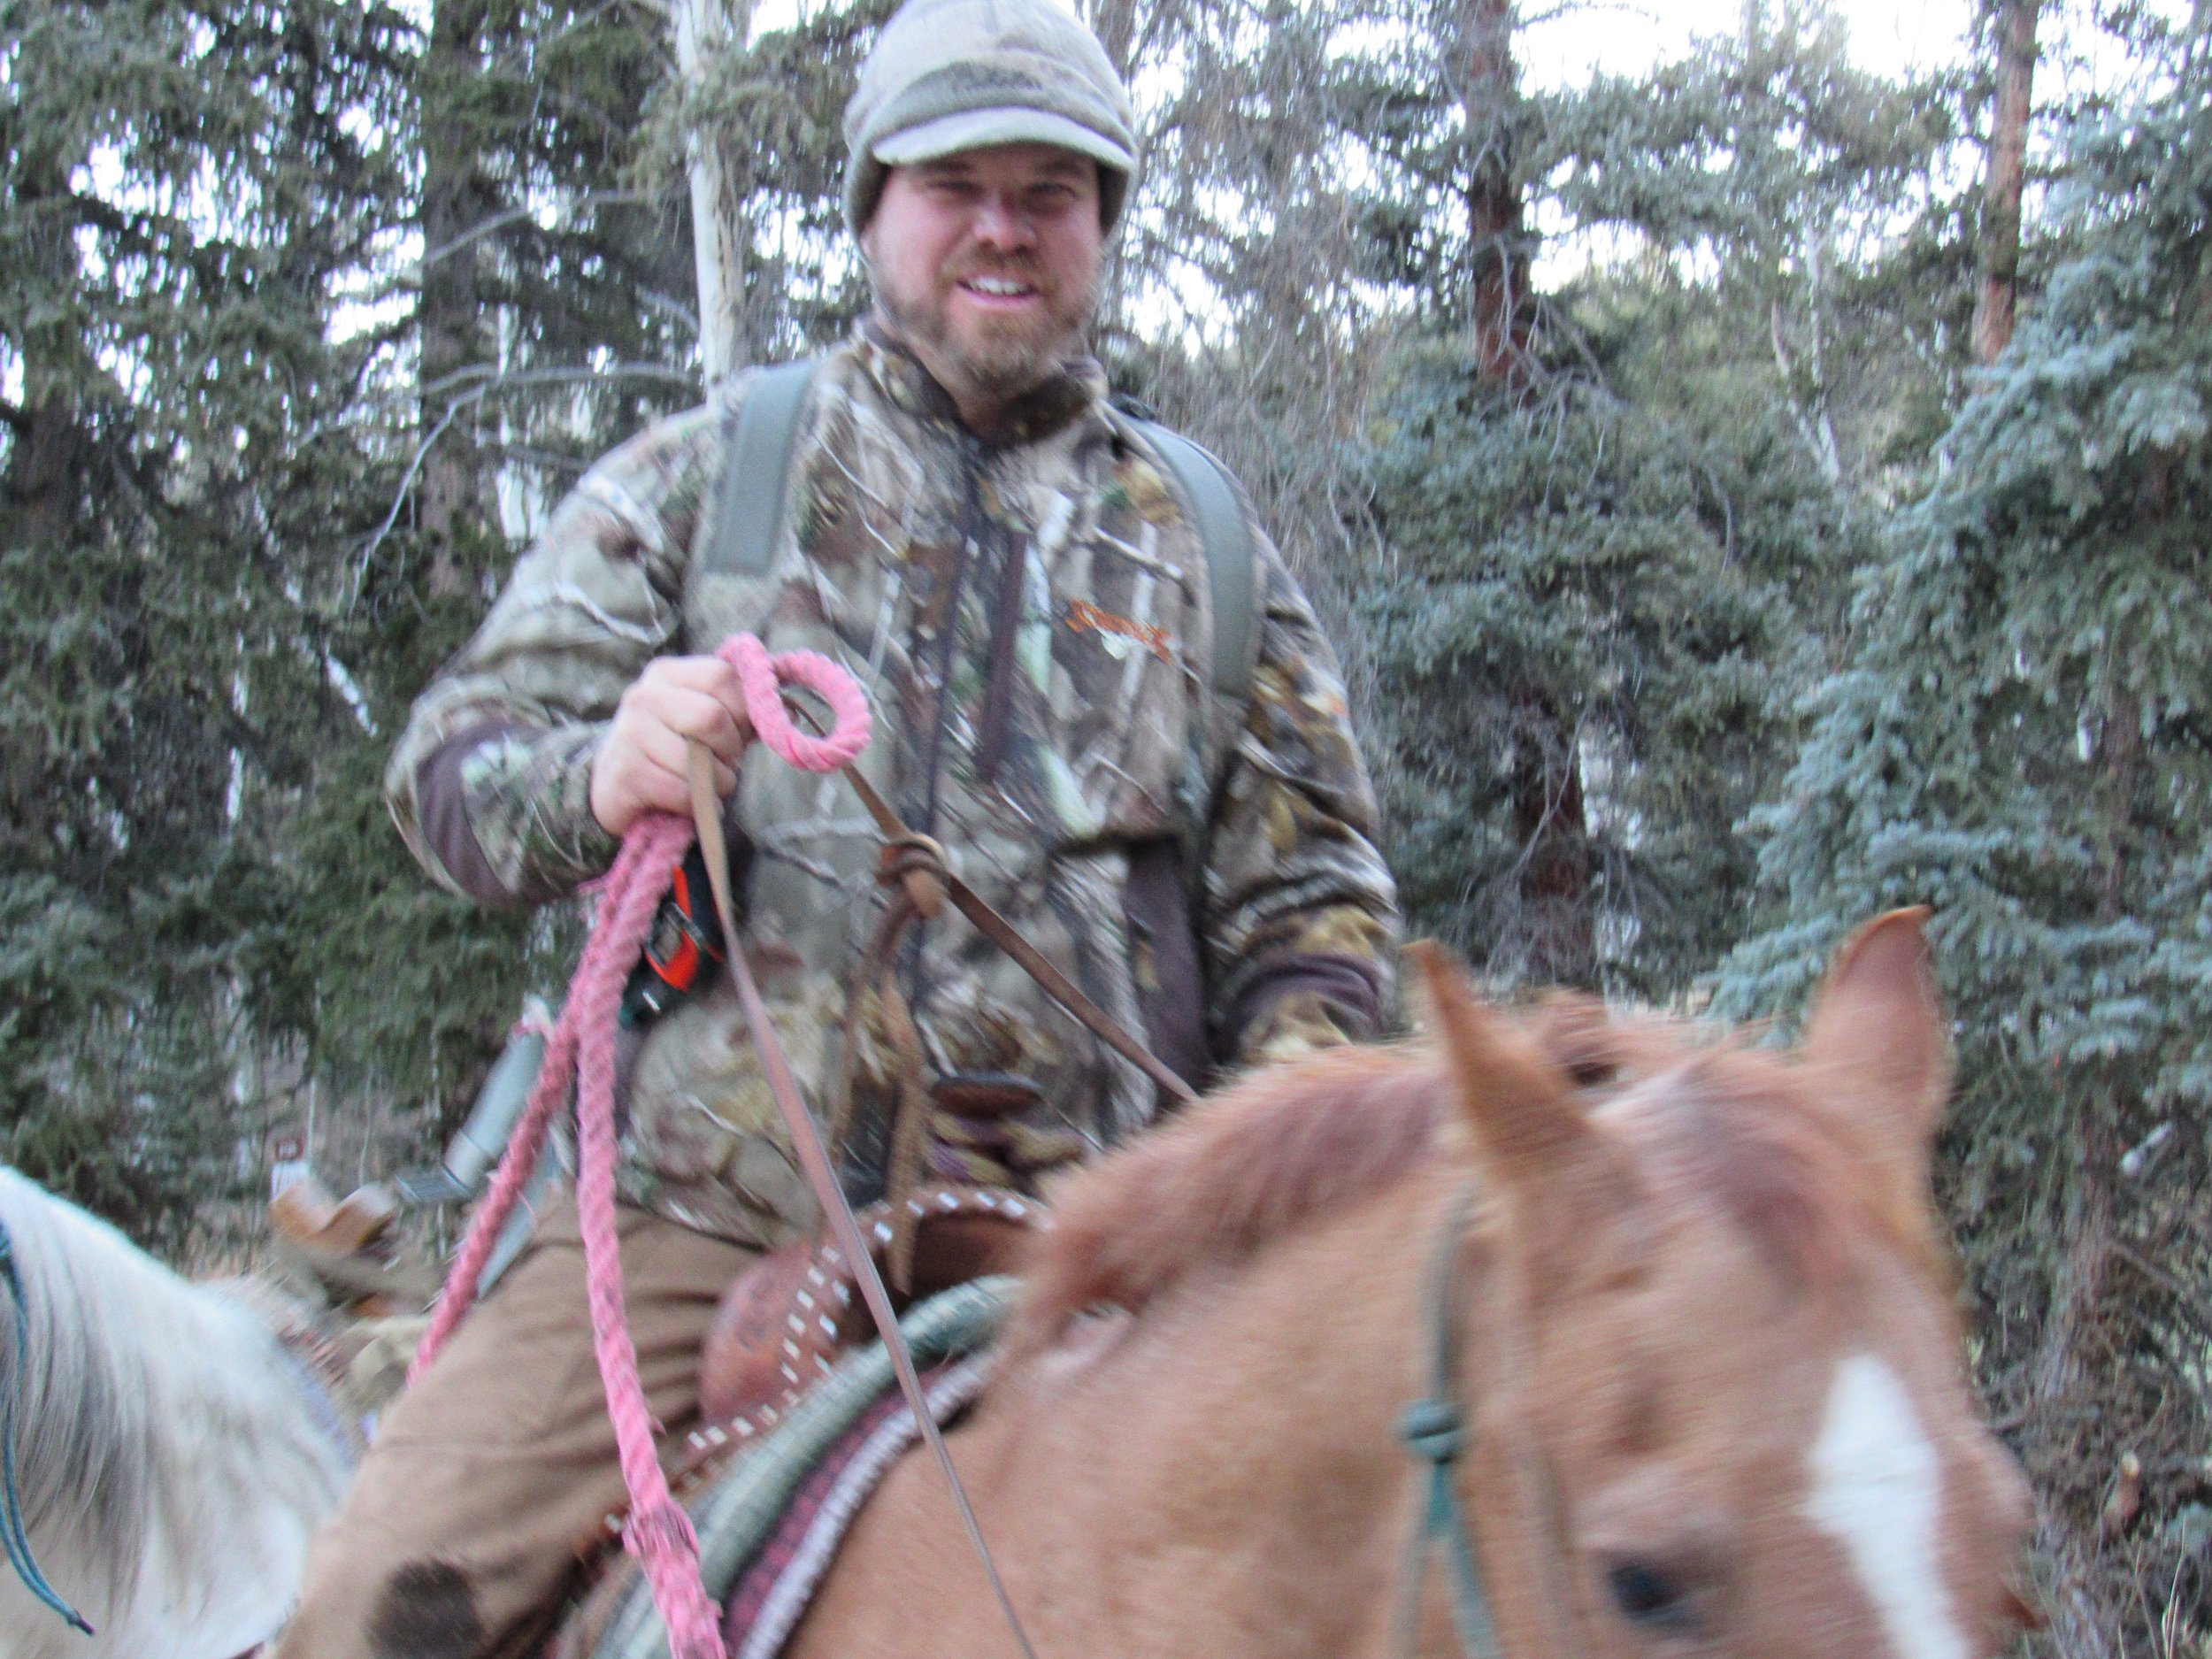 Scott - Scott passion for hunting has taken him around the world. But his  true love is chasing big bulls above tree line.  Calling in elk or sitting until last light  Scott will get you in with the game.